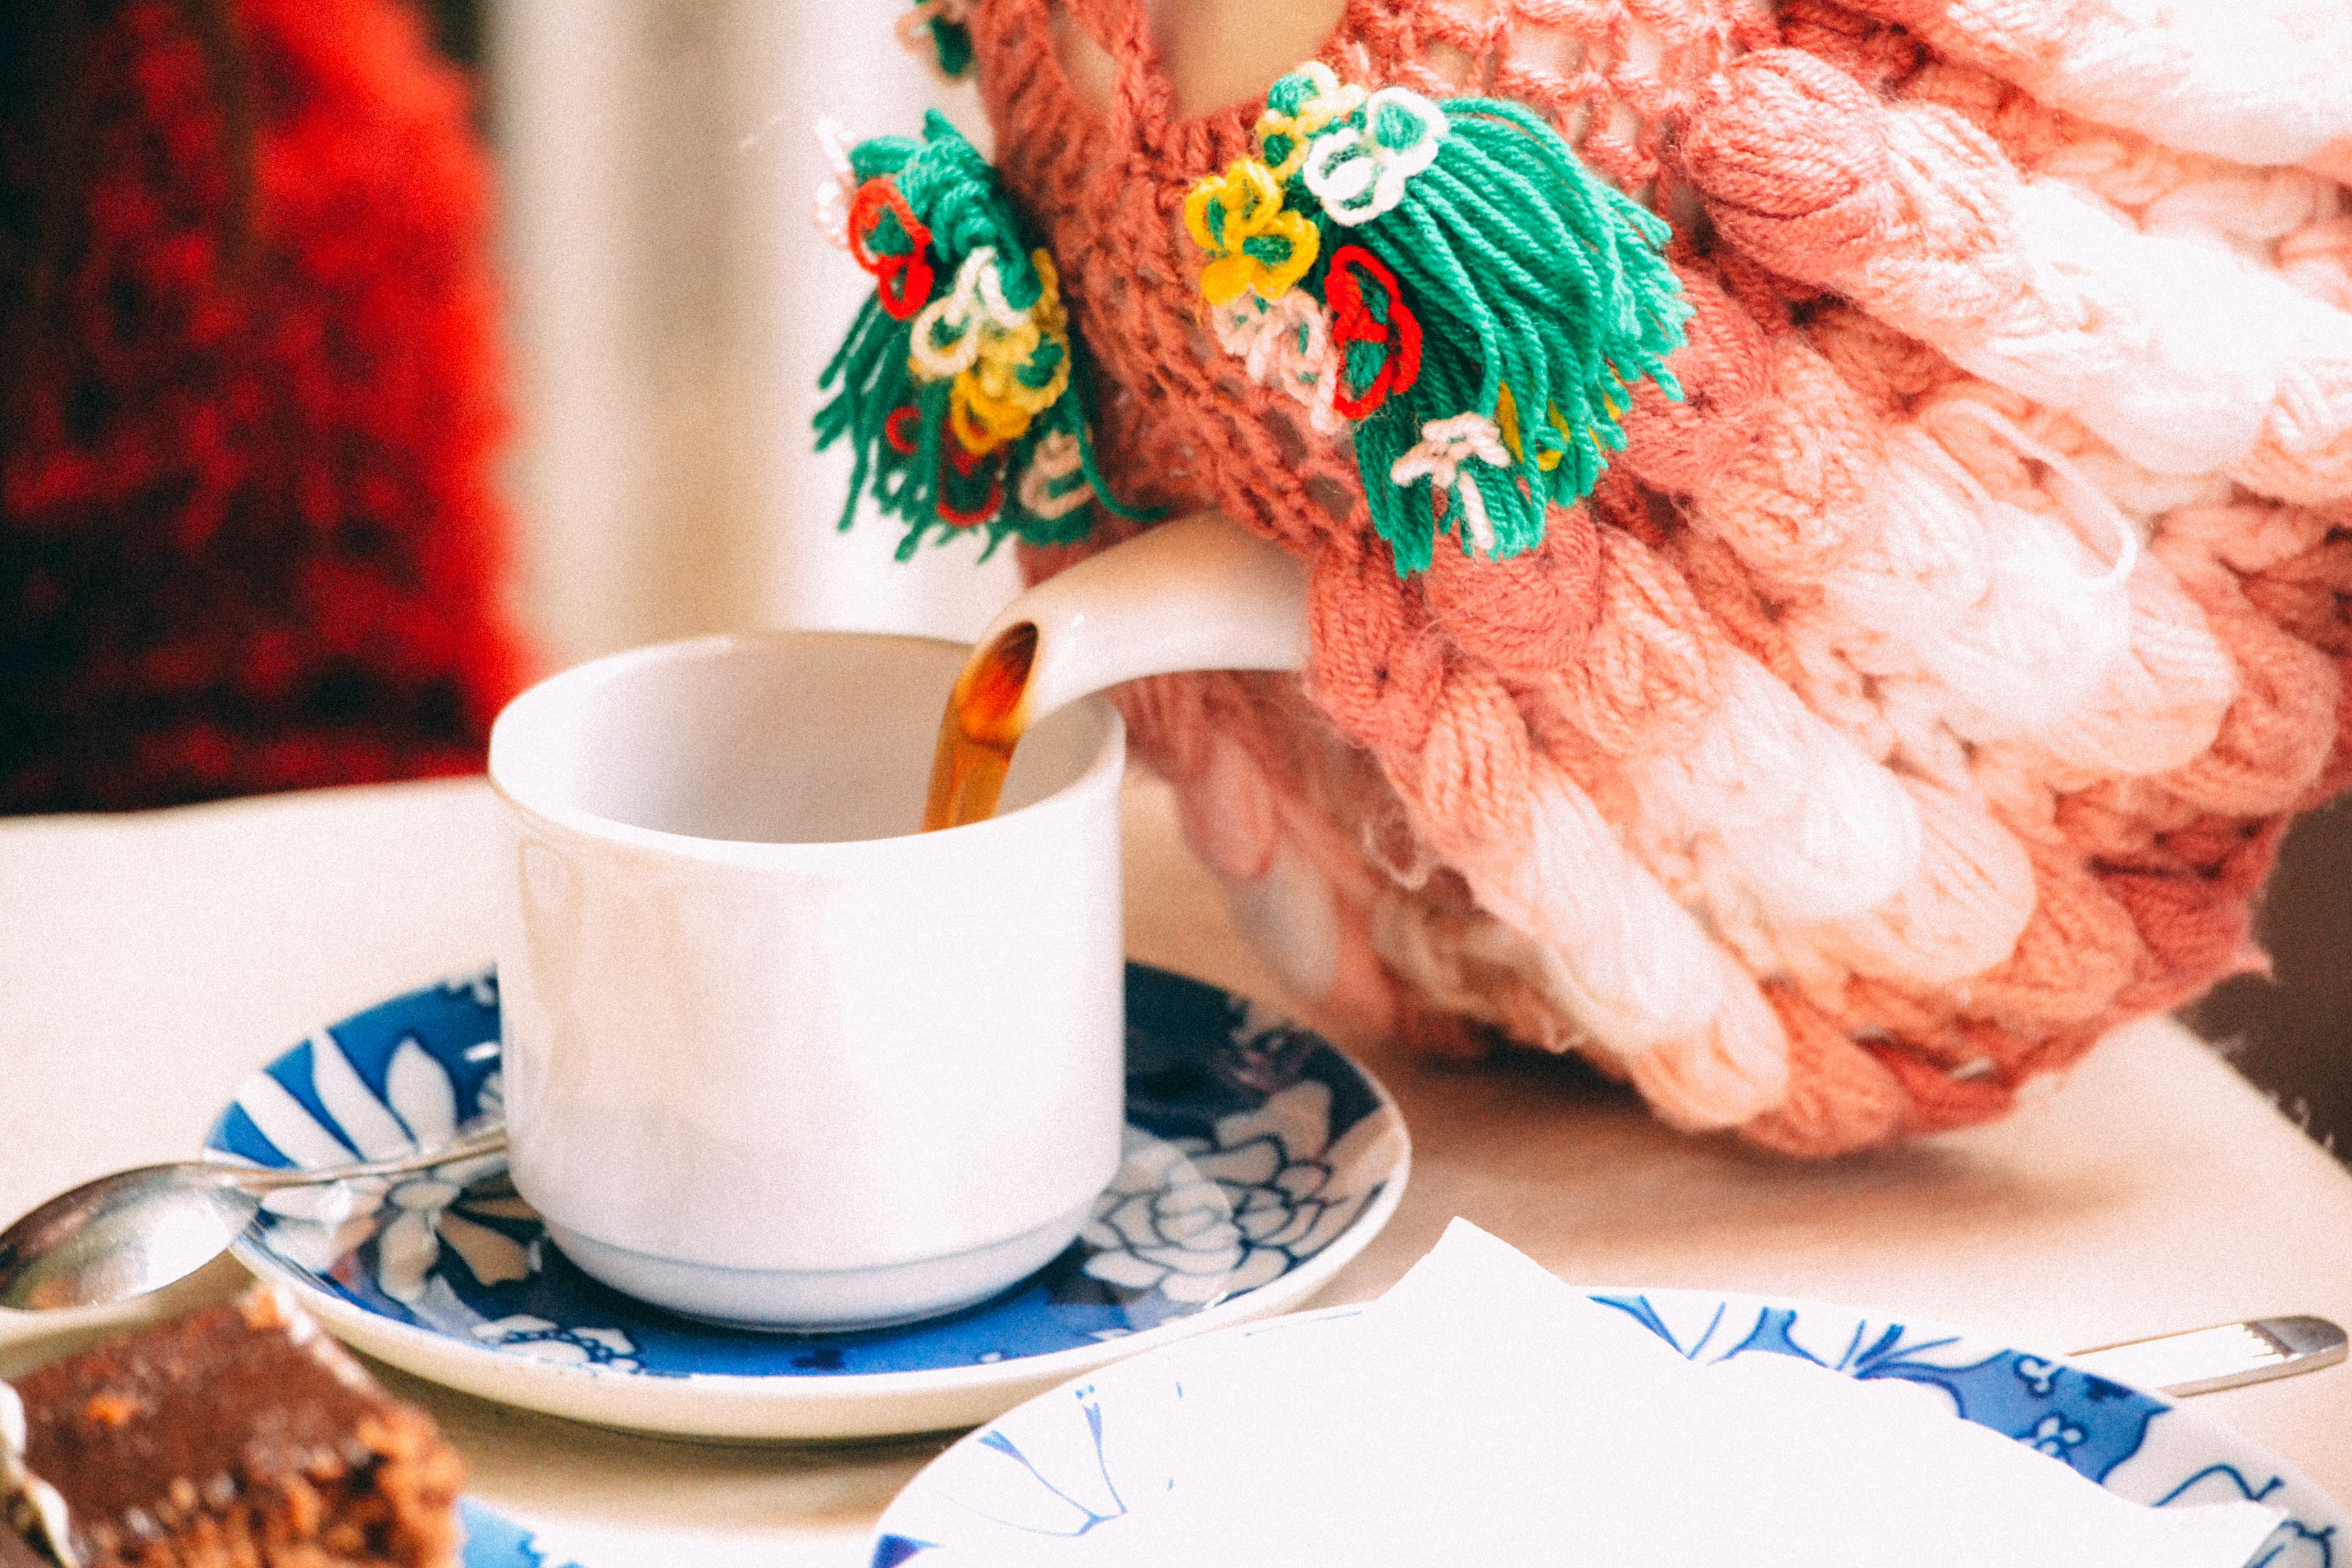 selective focus photography of person pouring teacup